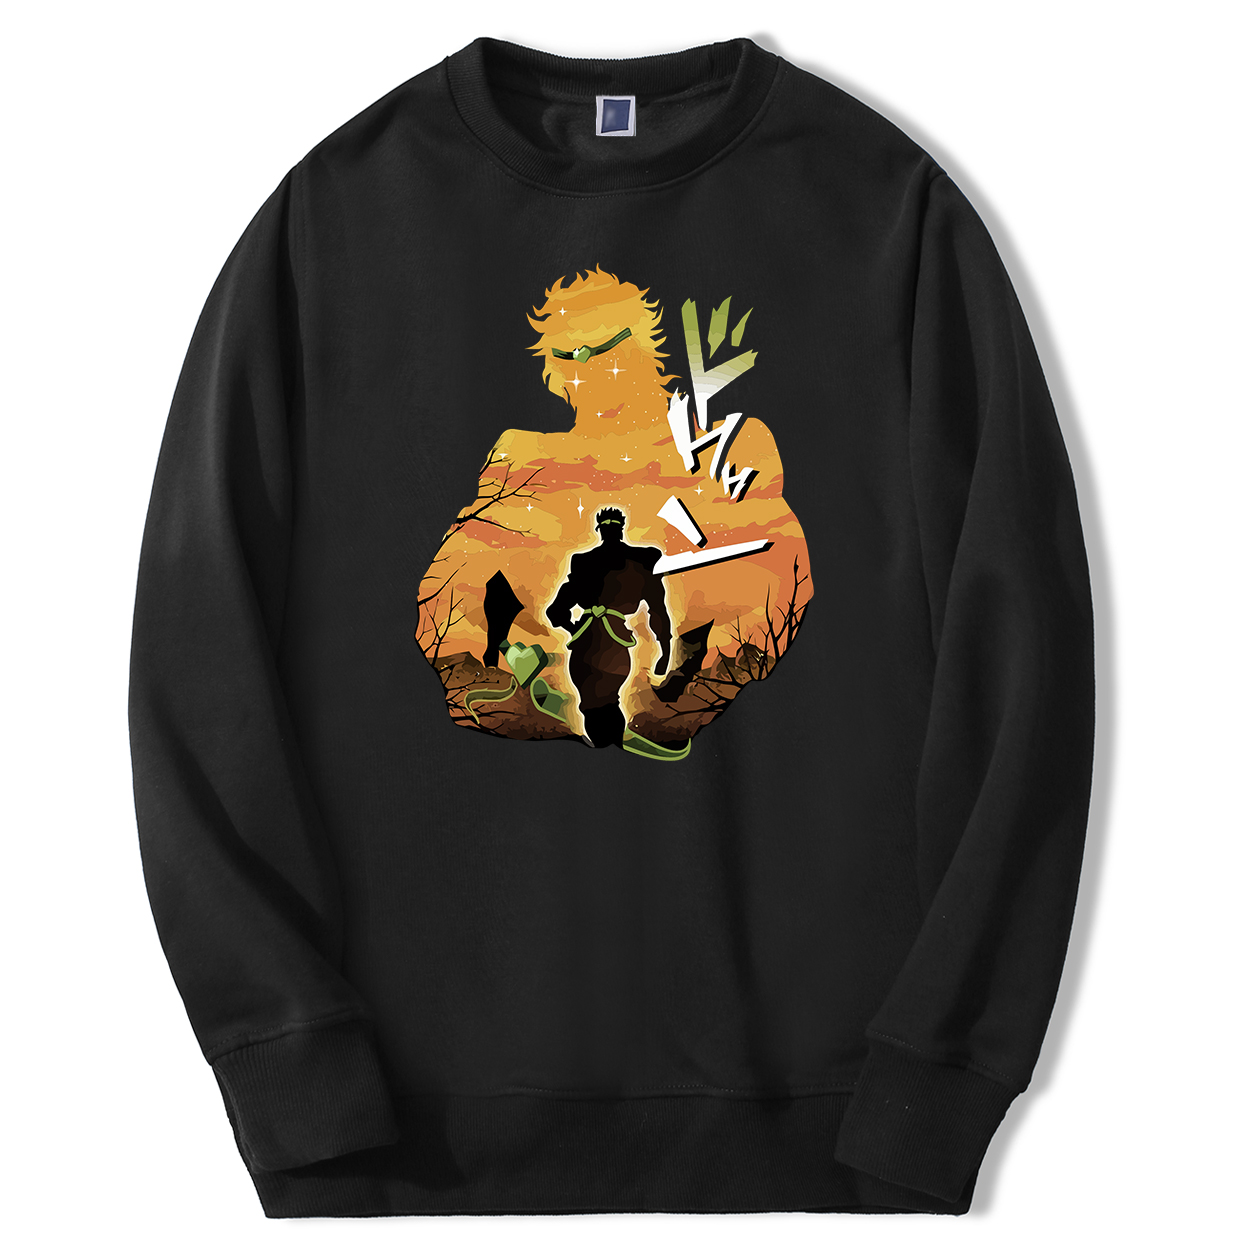 Jojos Bizarre Adventure Hoodie Men Dio Japan Anime JOJO Hoodies Sweatshirt Fleece Sportswear New Arrival Crewneck Sweatshirts